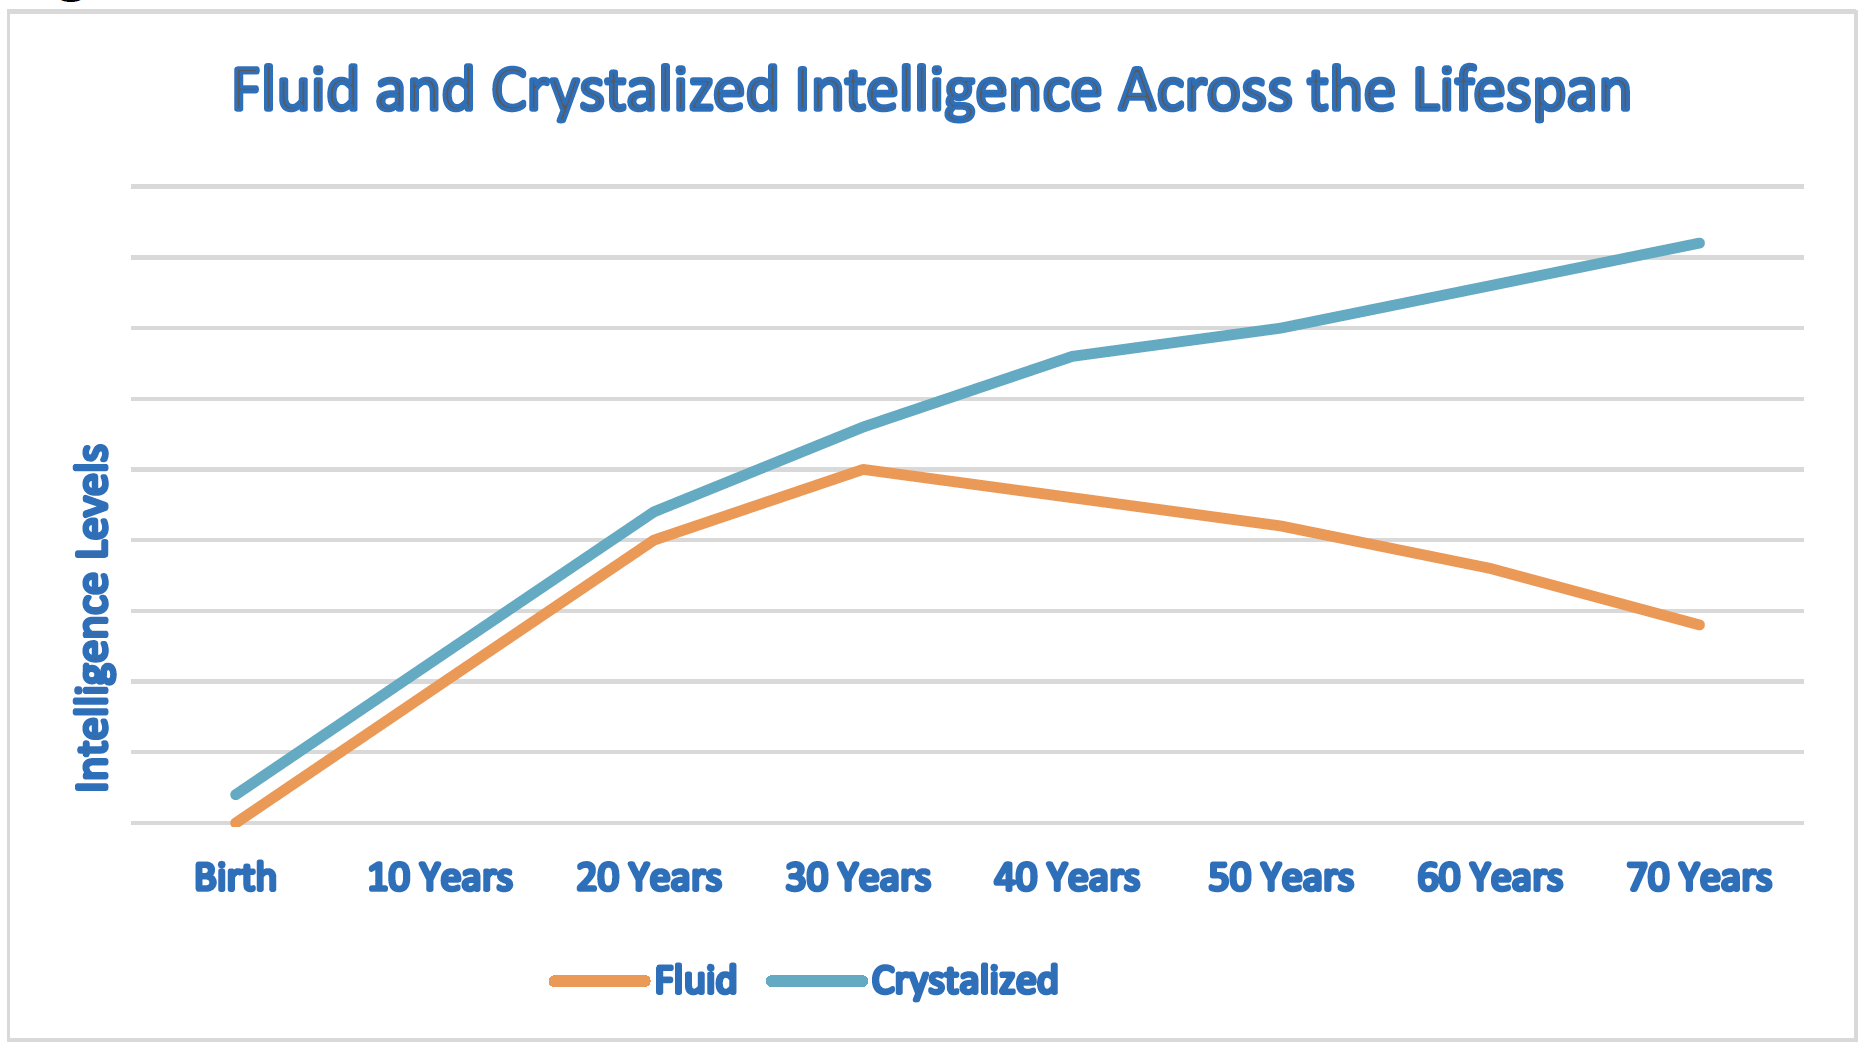 graph showing fluid and crystalized intelligence across the lifespan